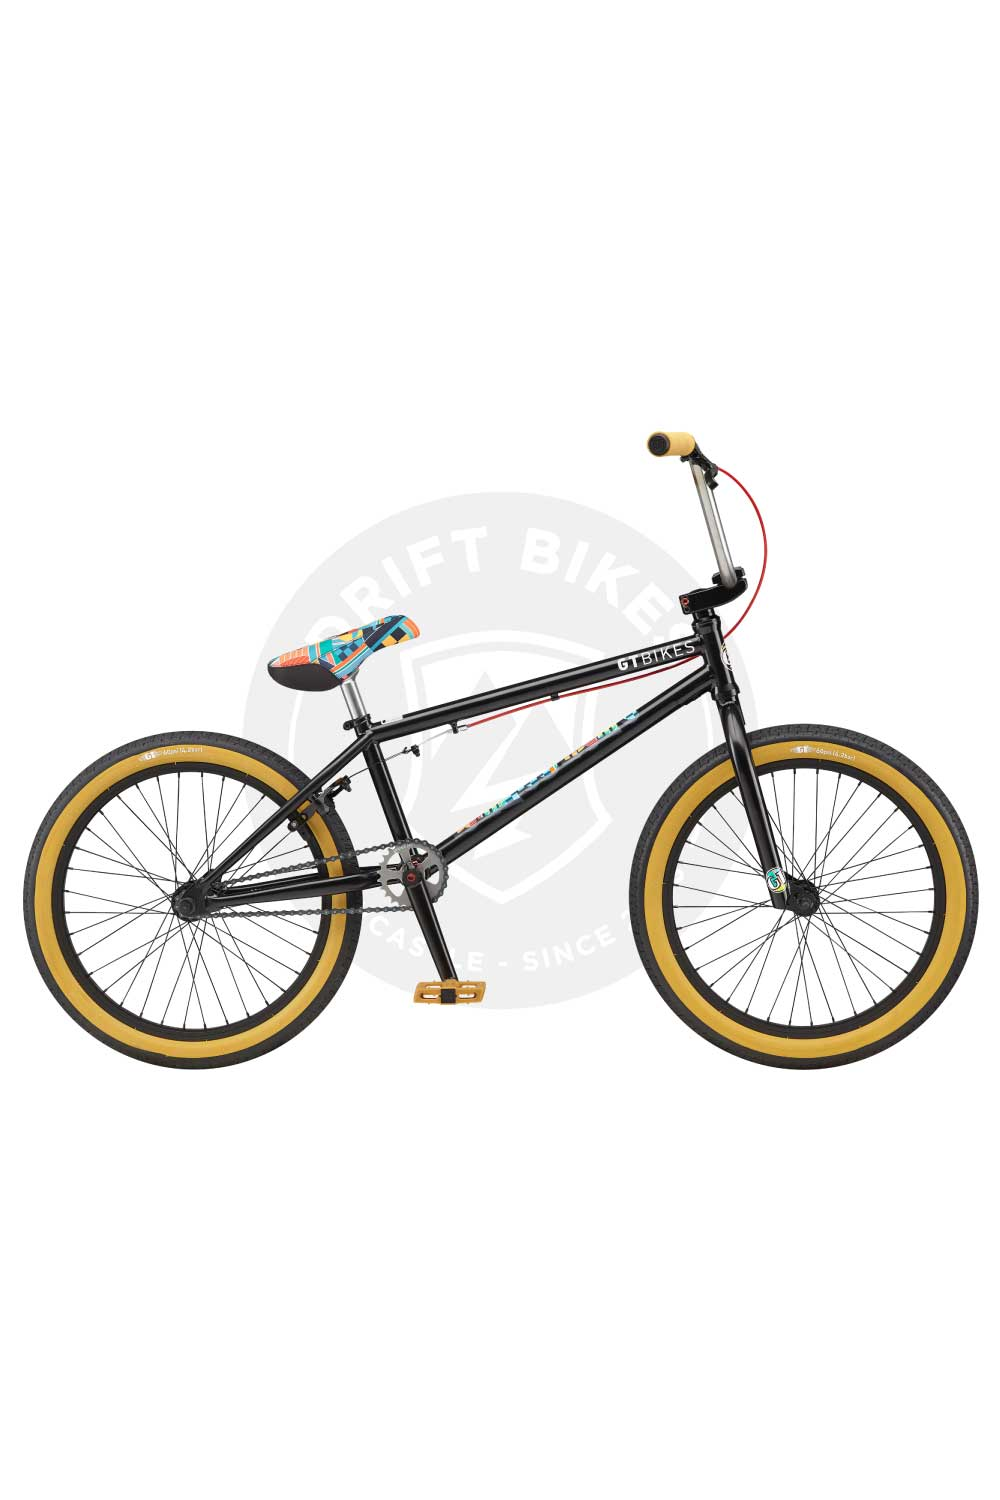 "GT Bicycles 2021 Performer 21"" BMX TT Satin Black"